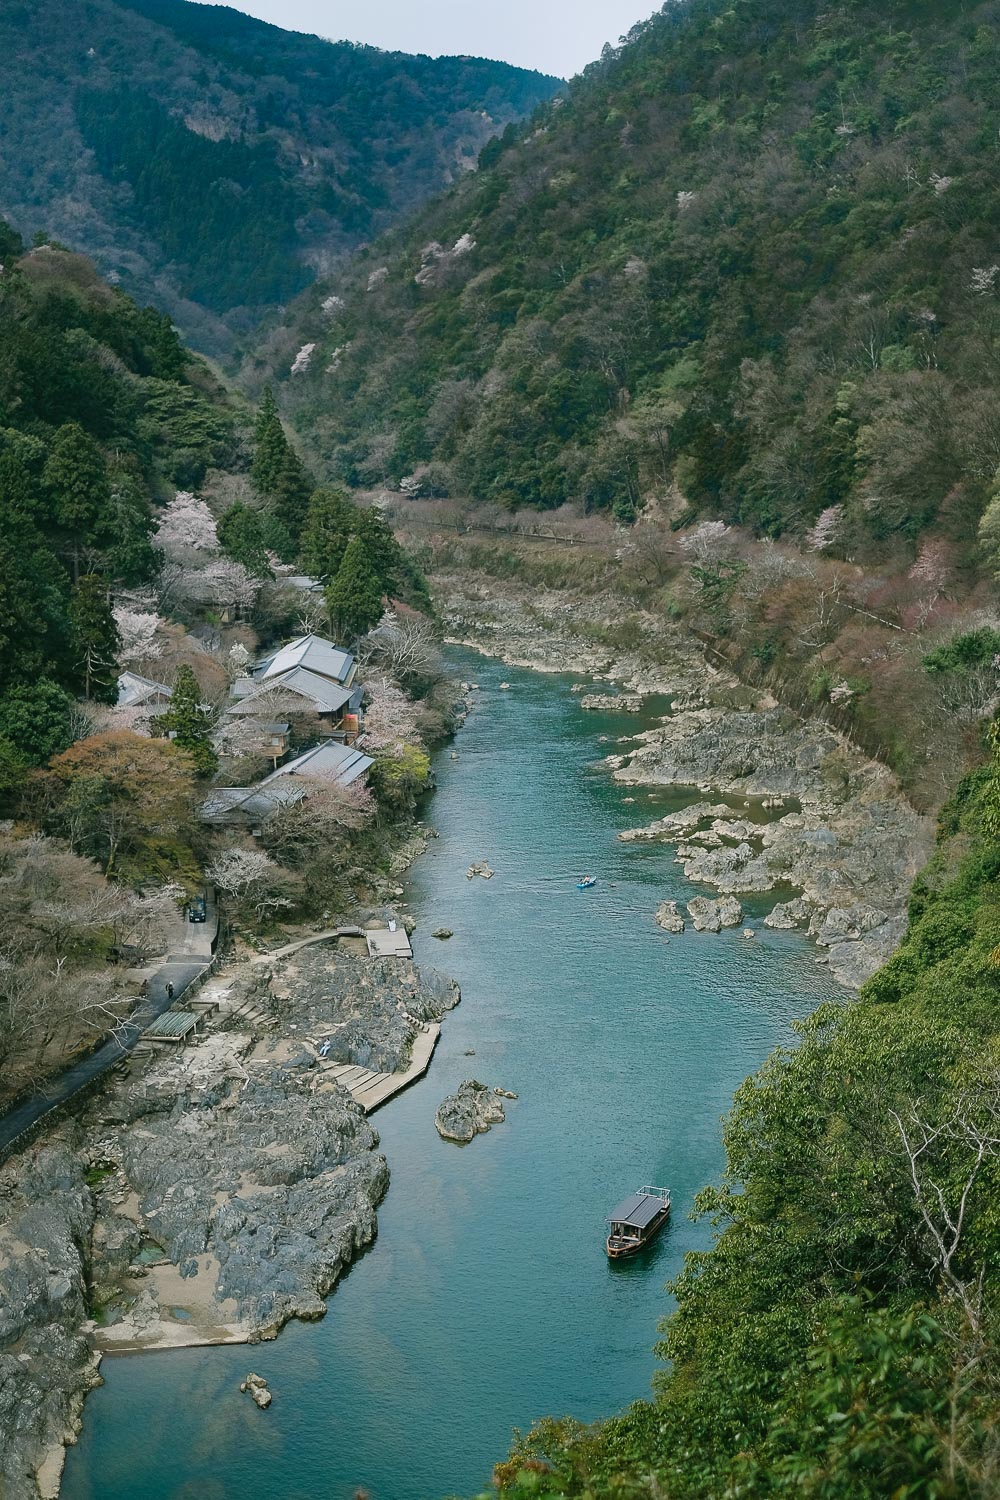 Ōi River in Arashiyama